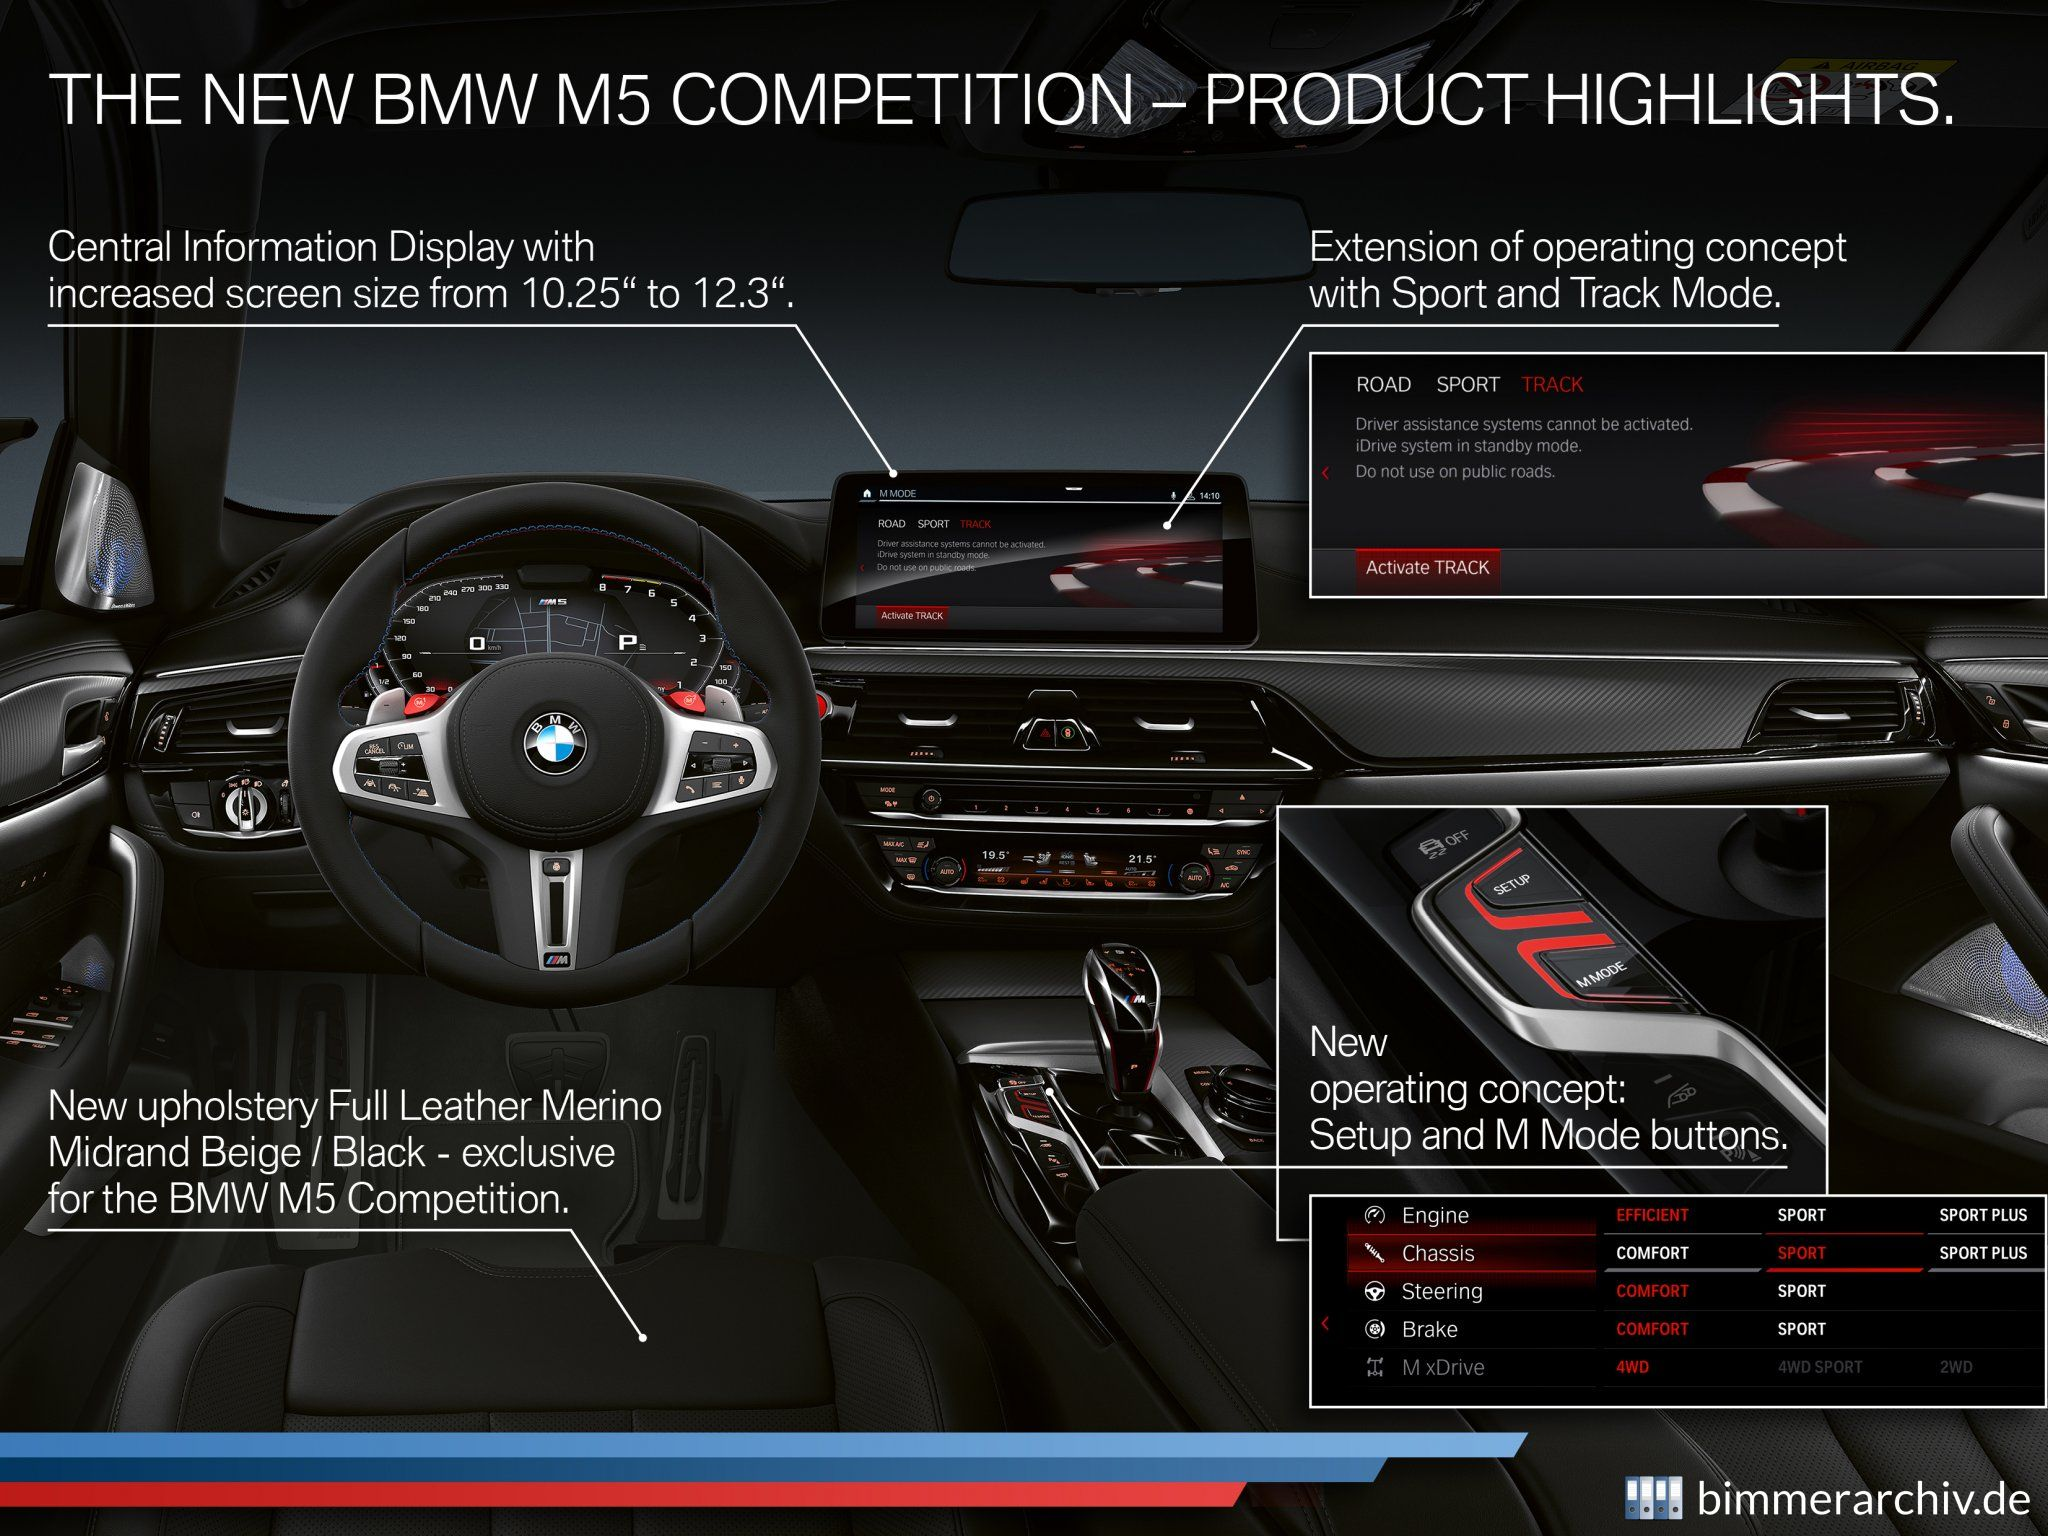 BMW M5 Competition - Highlights